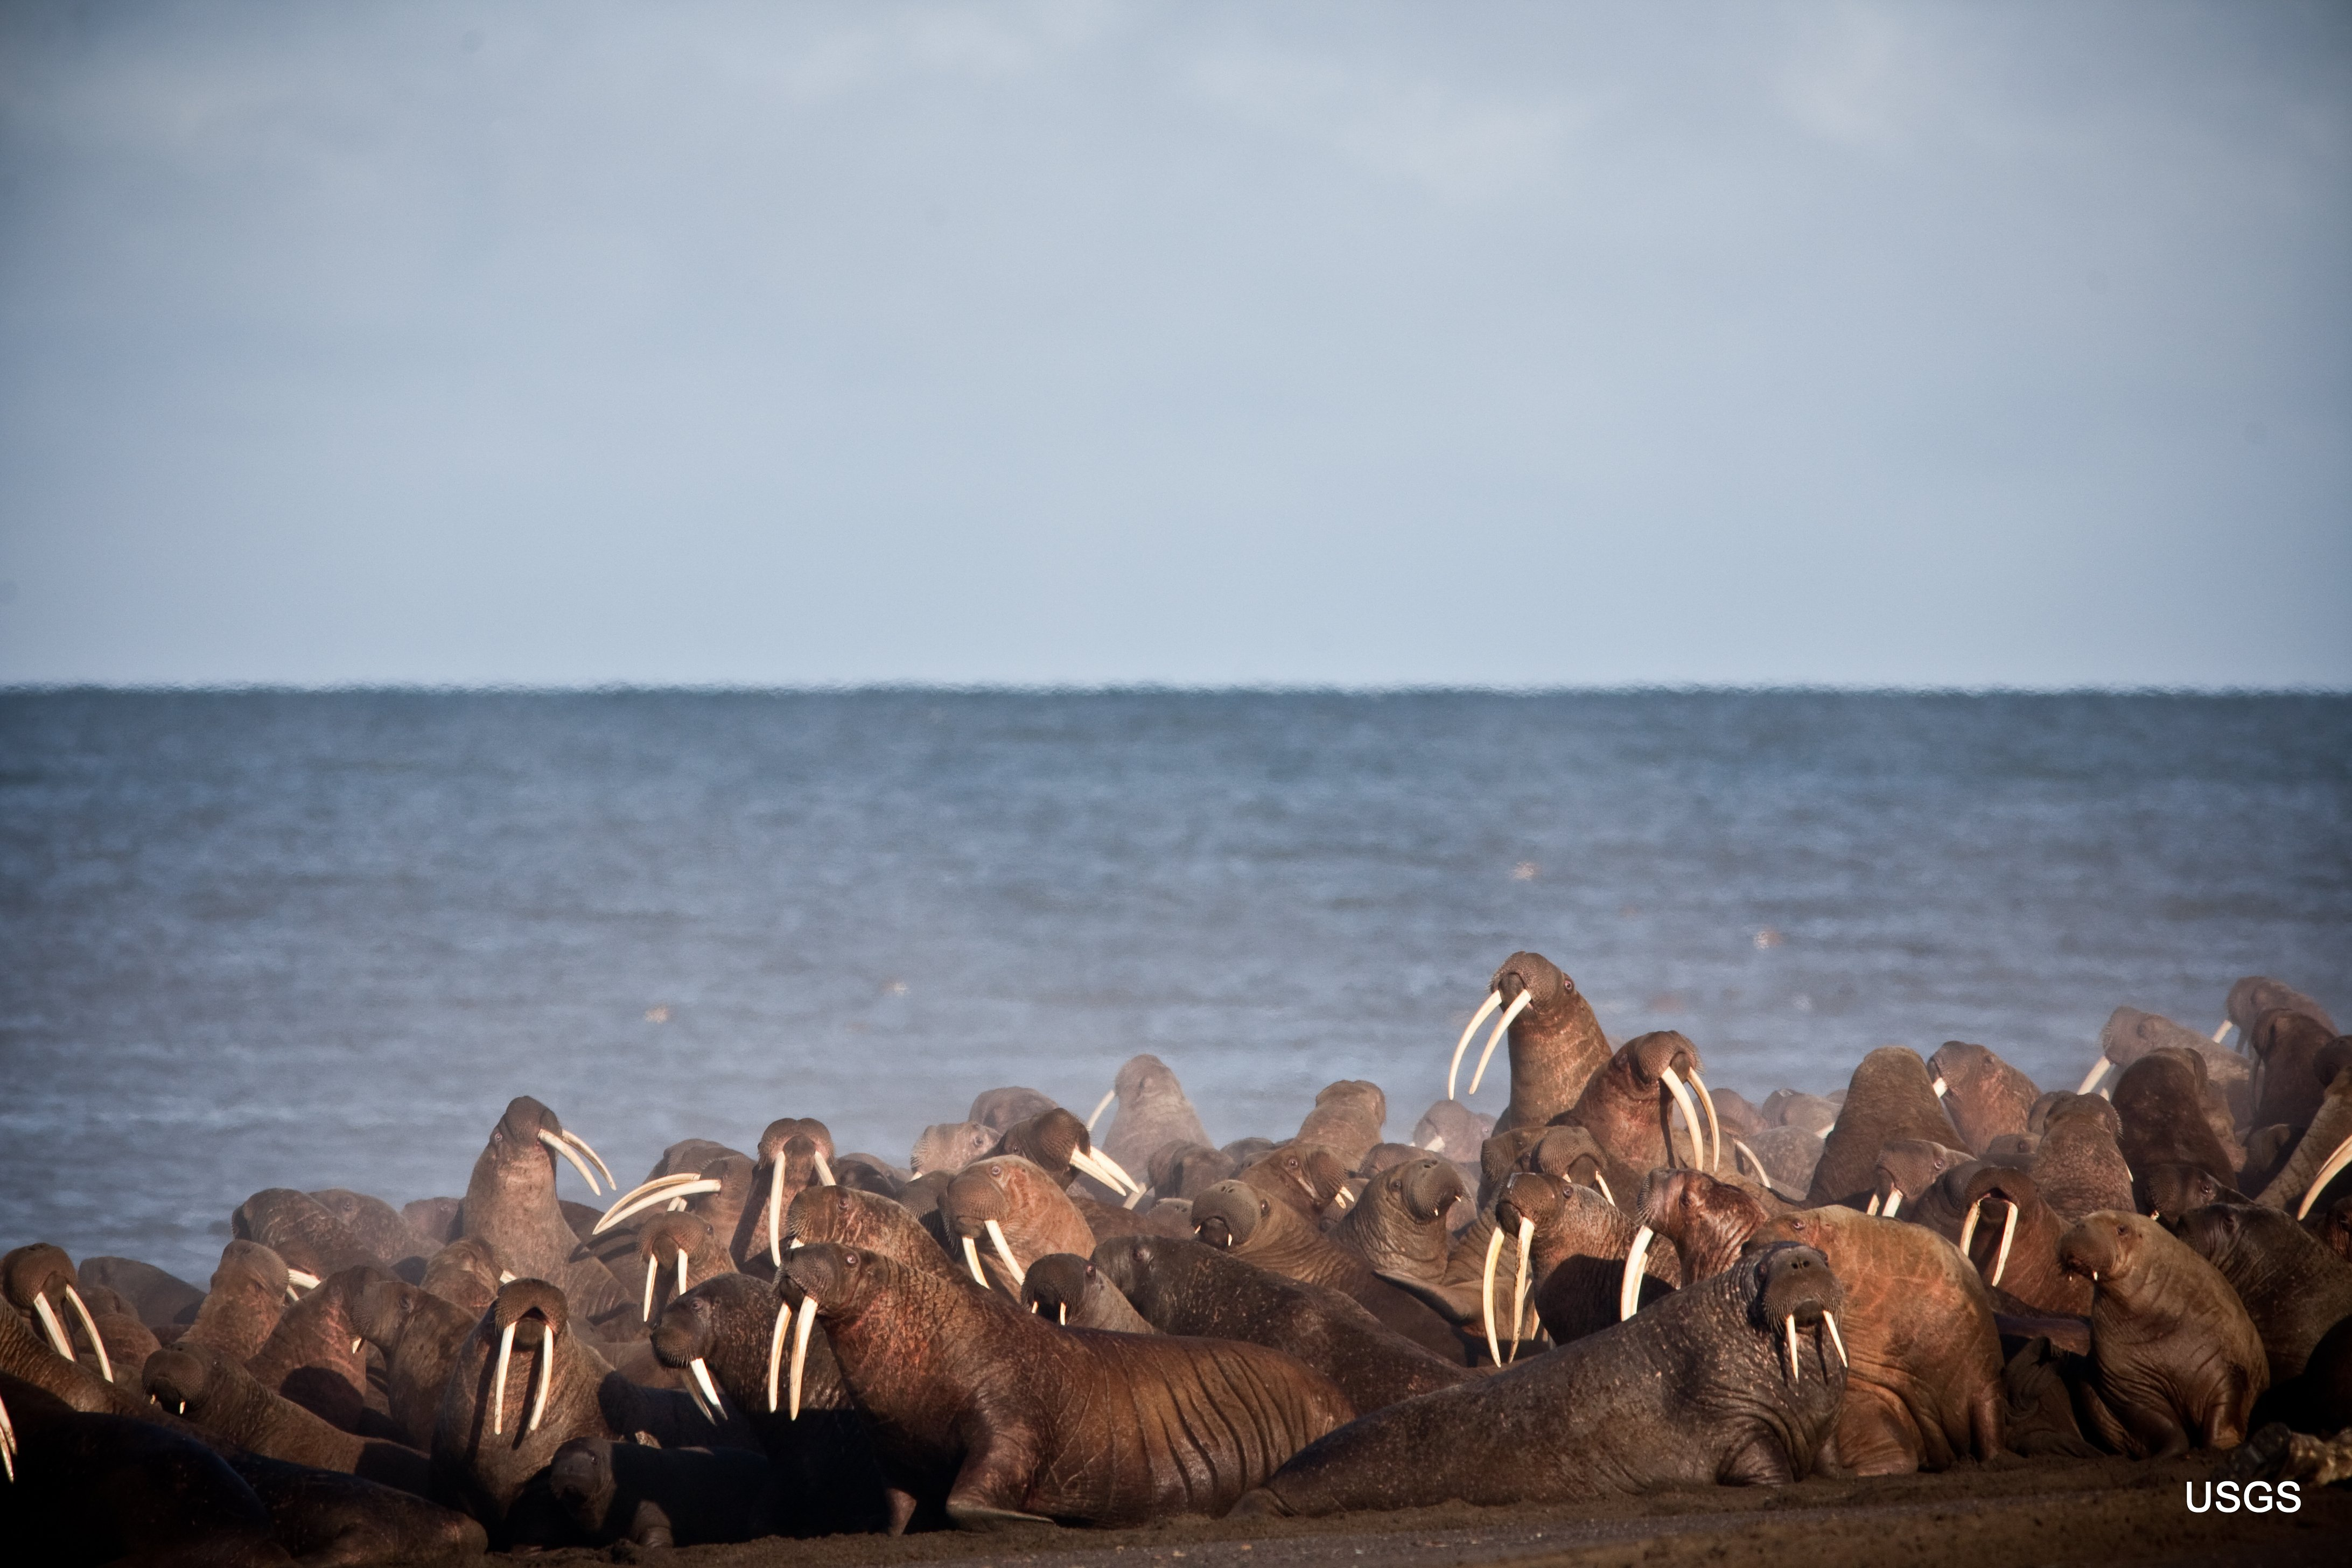 Environmental group sues to secure Endangered Species Act protections for walruses